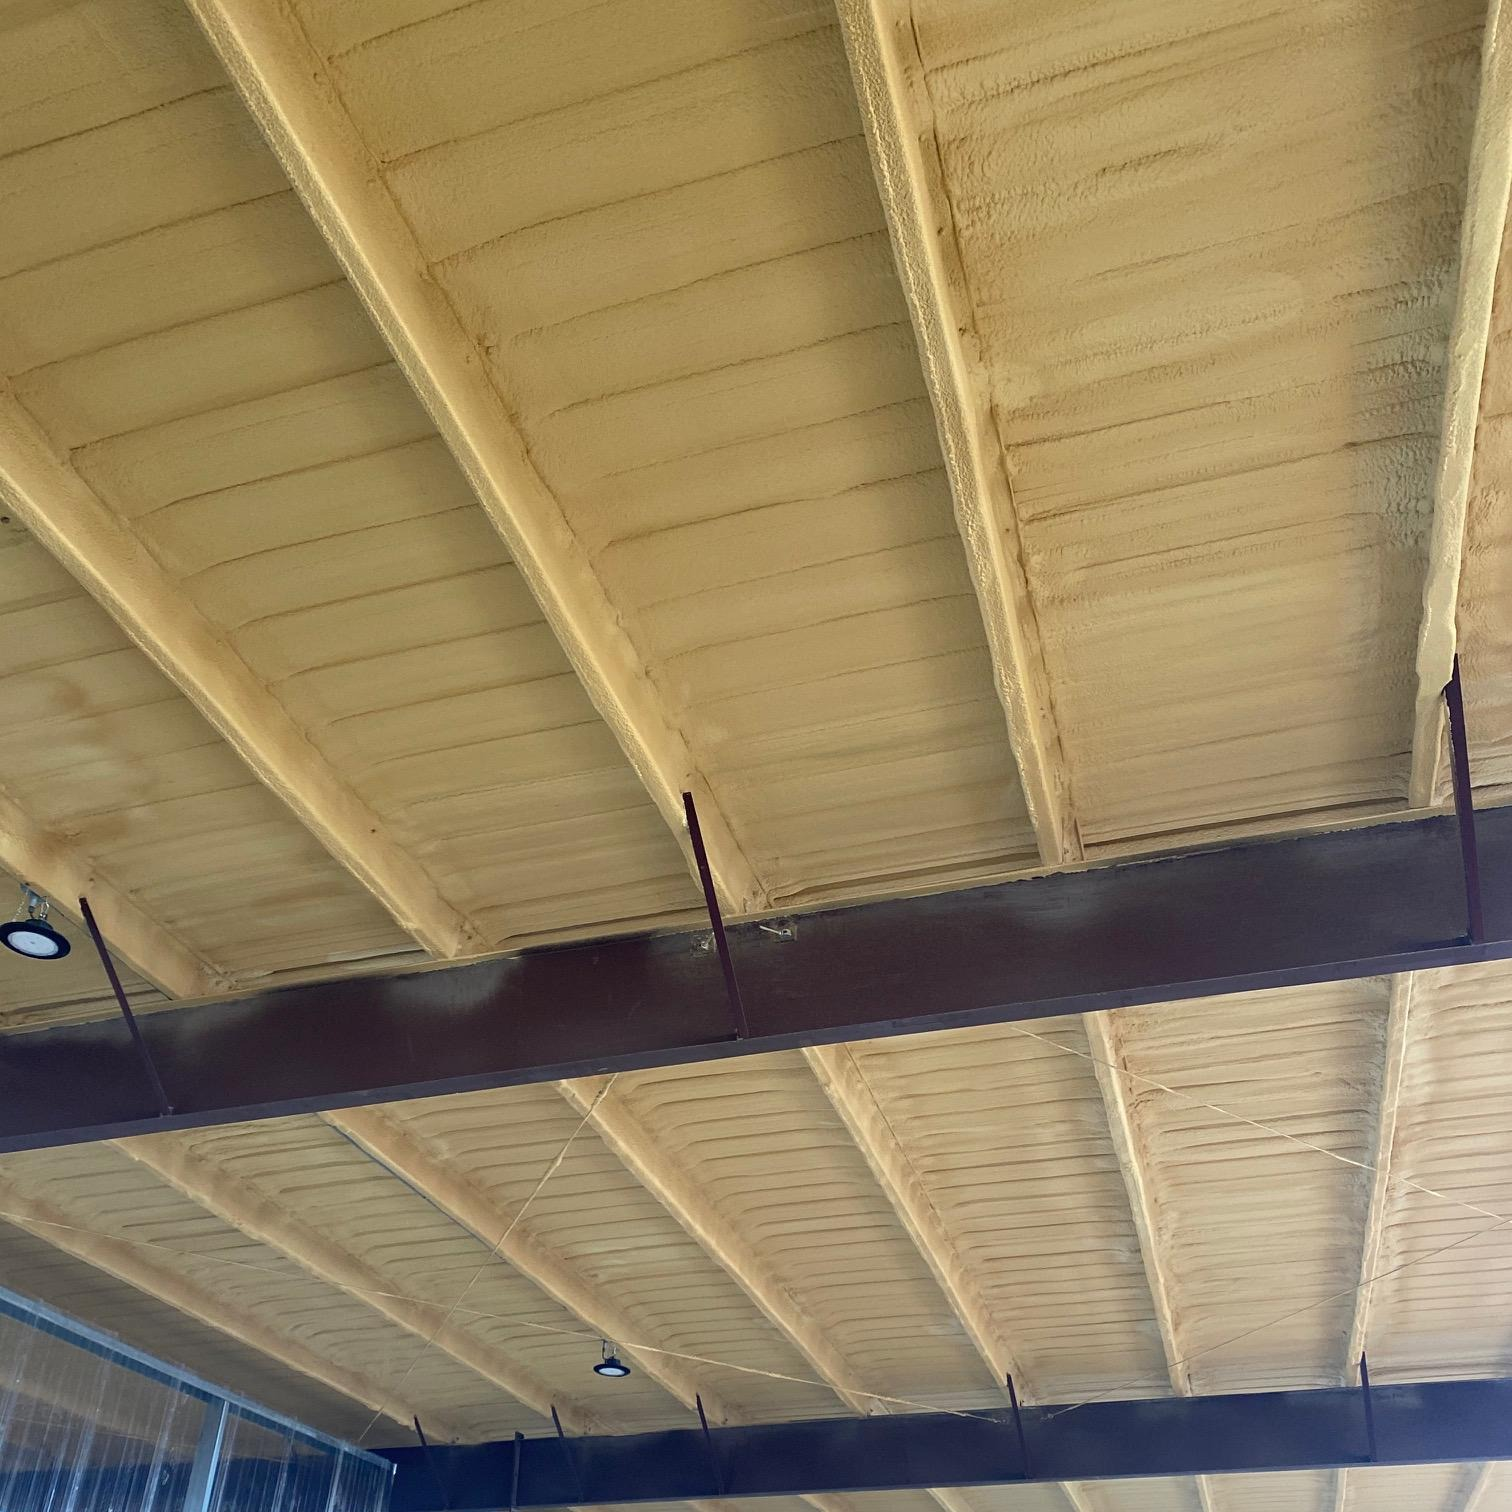 AK Roofing & Construction